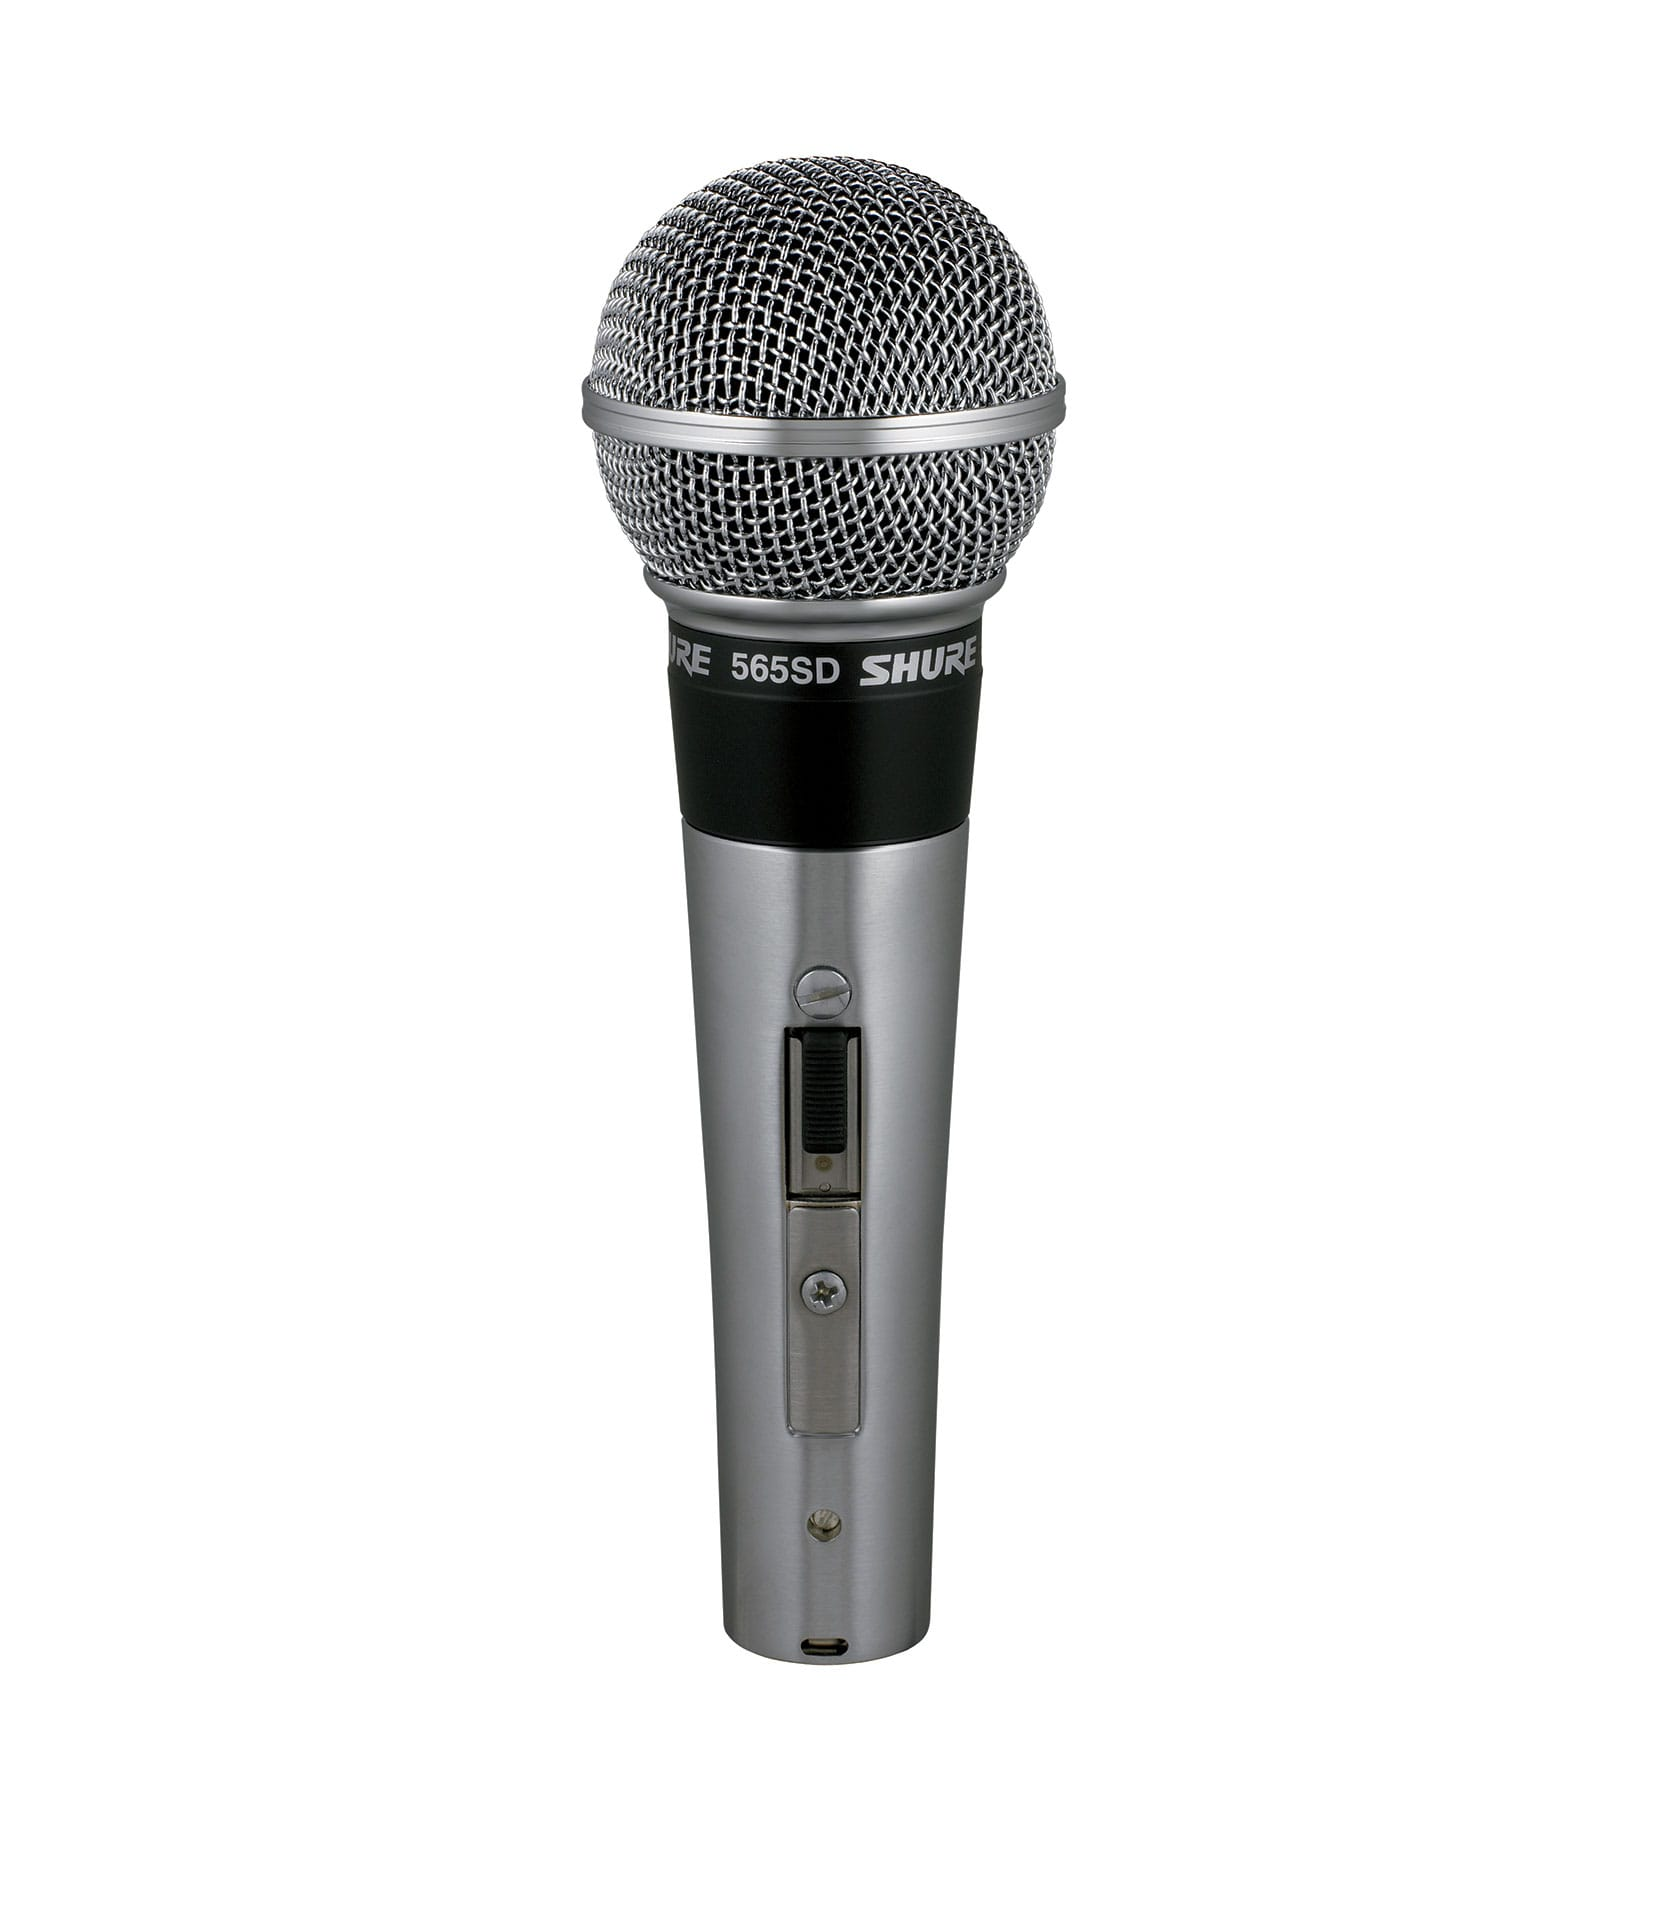 Shure - 565SDLCX Cardioid Dynamic Mic w Switchable Output